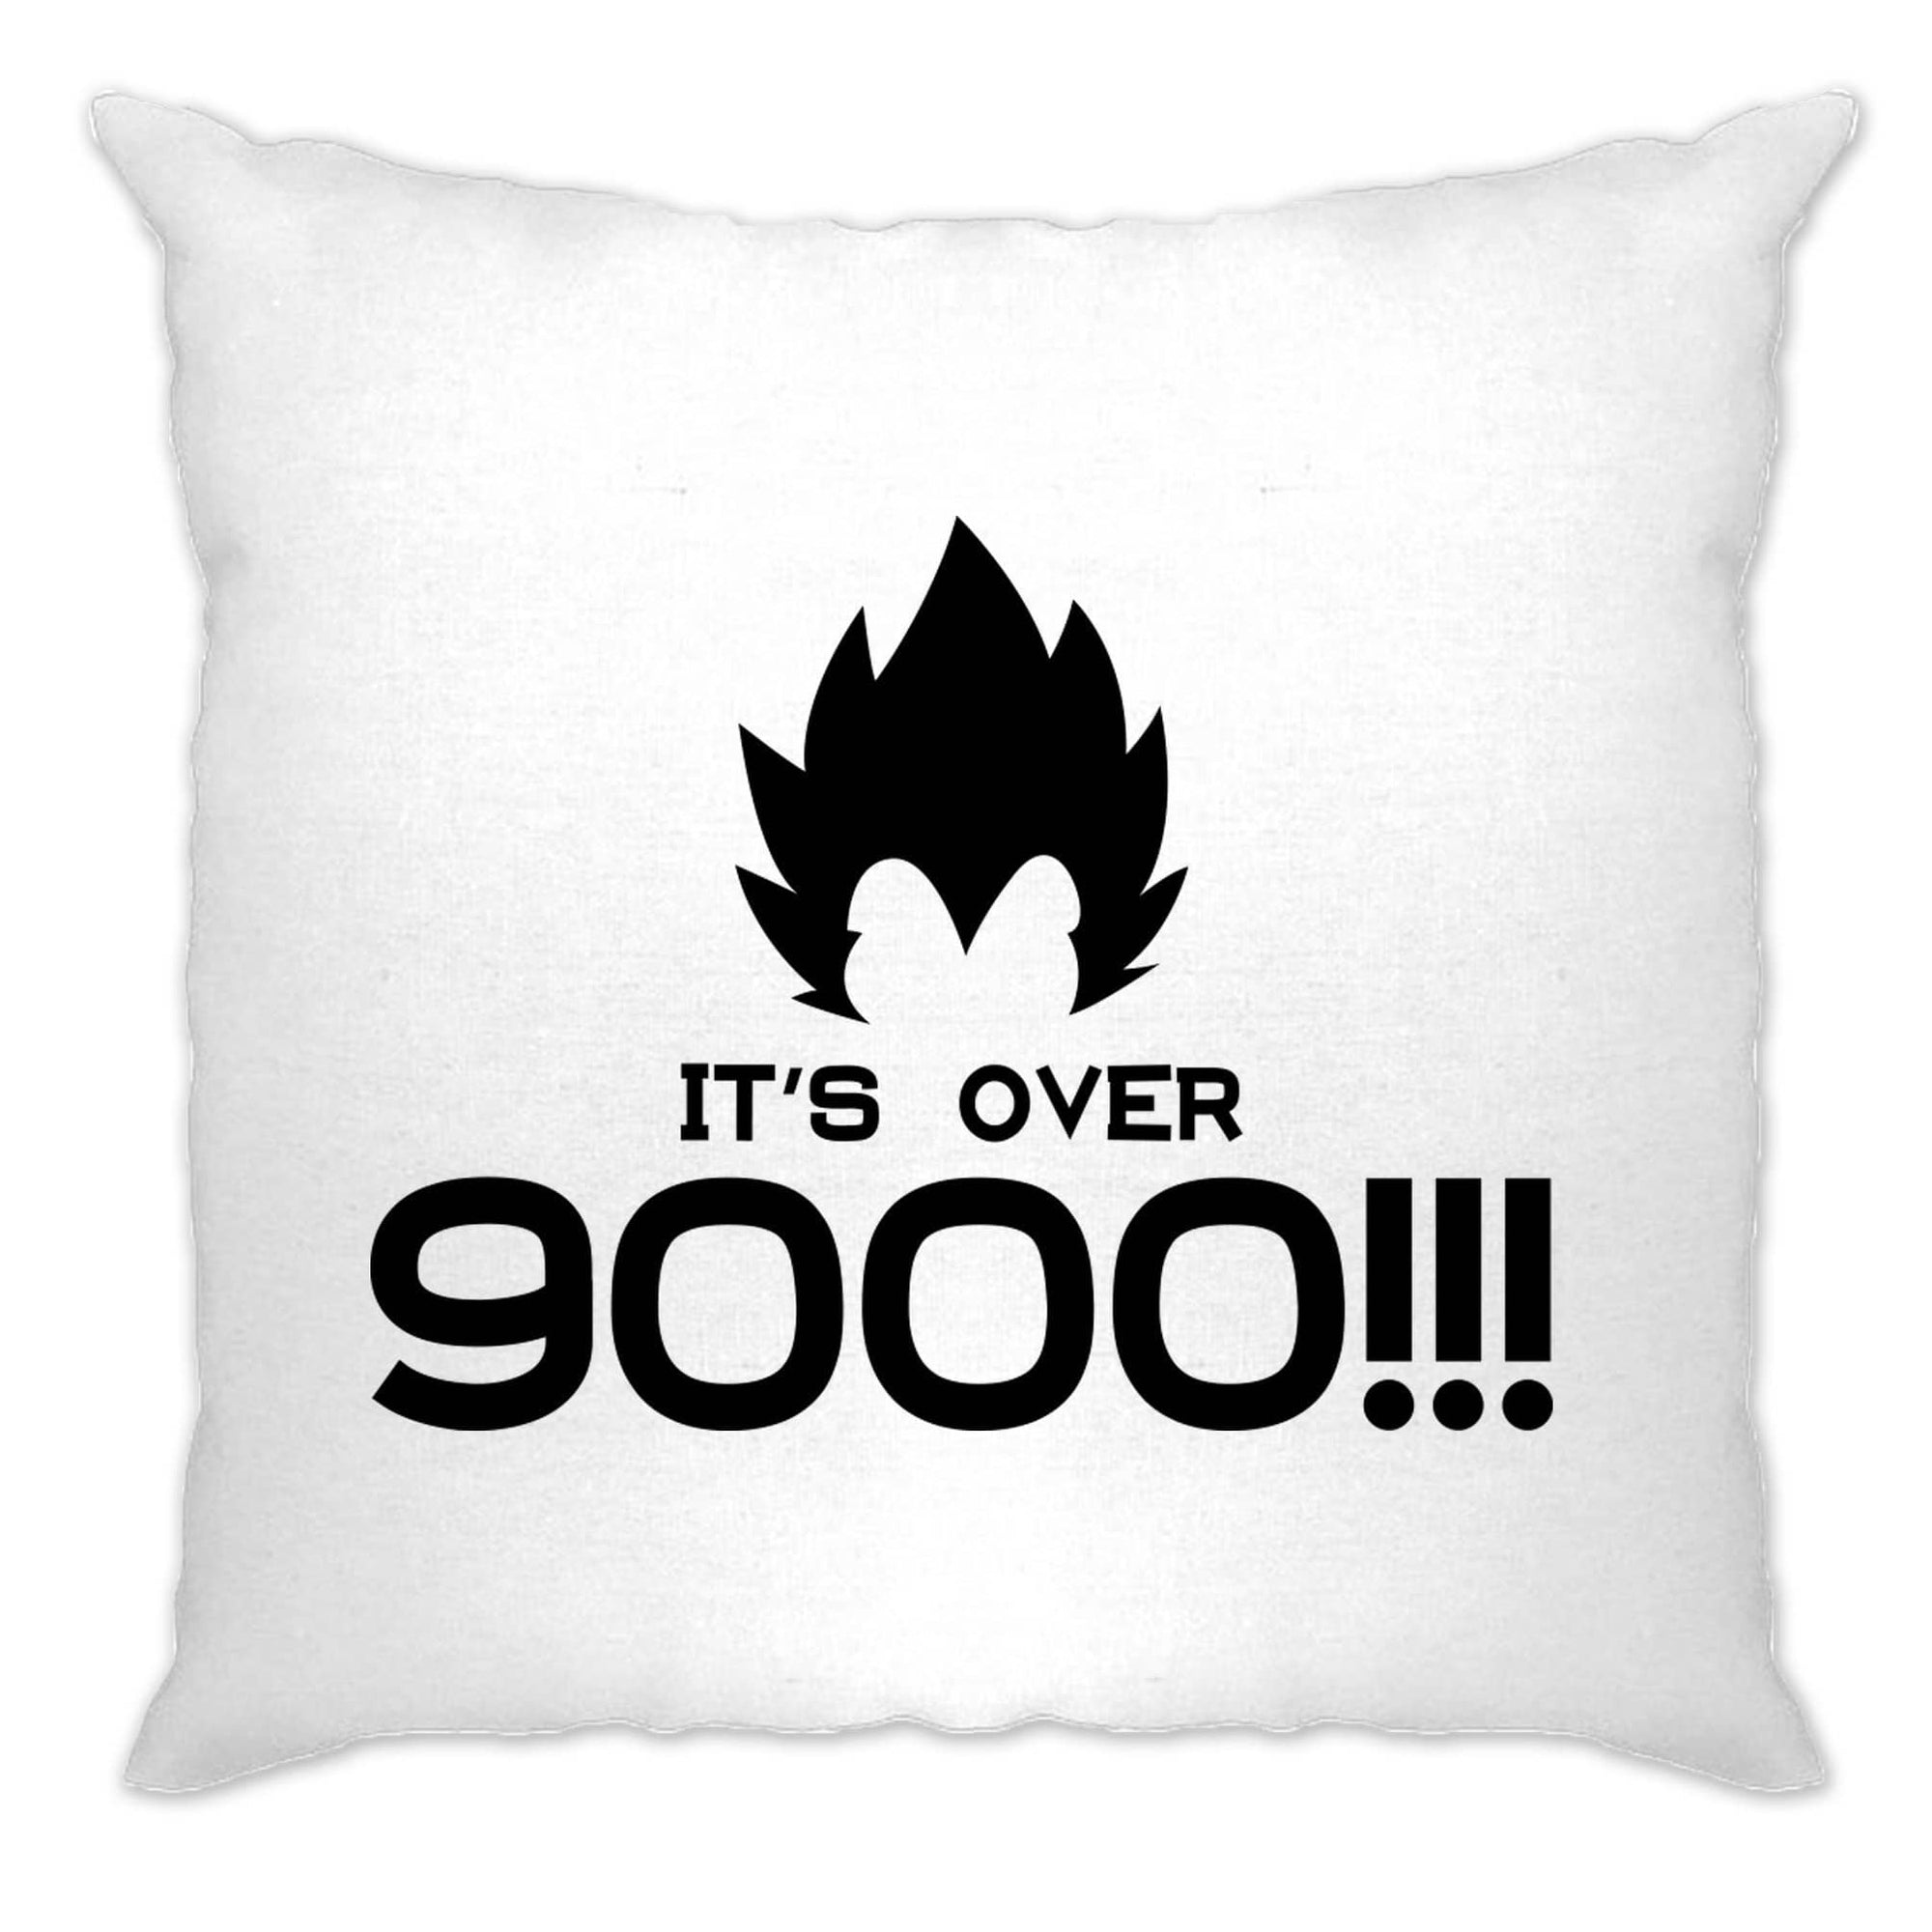 Funny Anime Parody Cushion Cover It's Over 9000!! Slogan